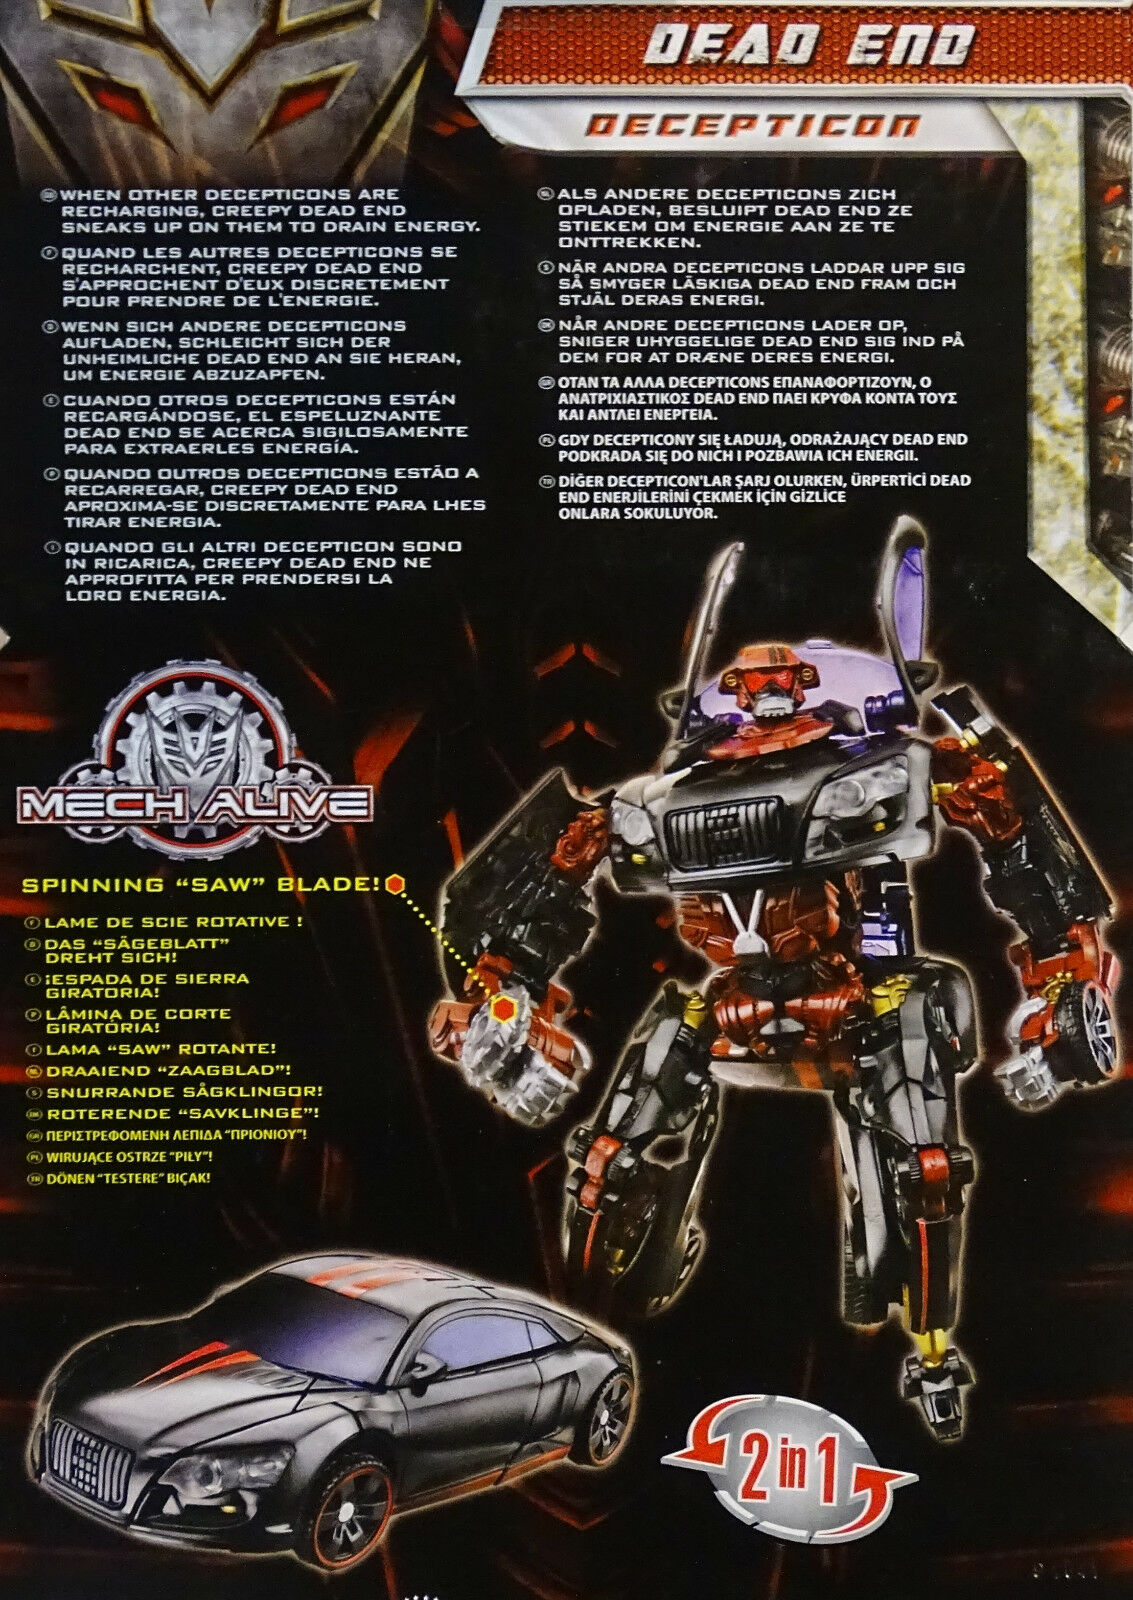 HASBRO® 92559 Transformers REVENGE OF THE THE THE FALLEN Deluxe Dead End 575786